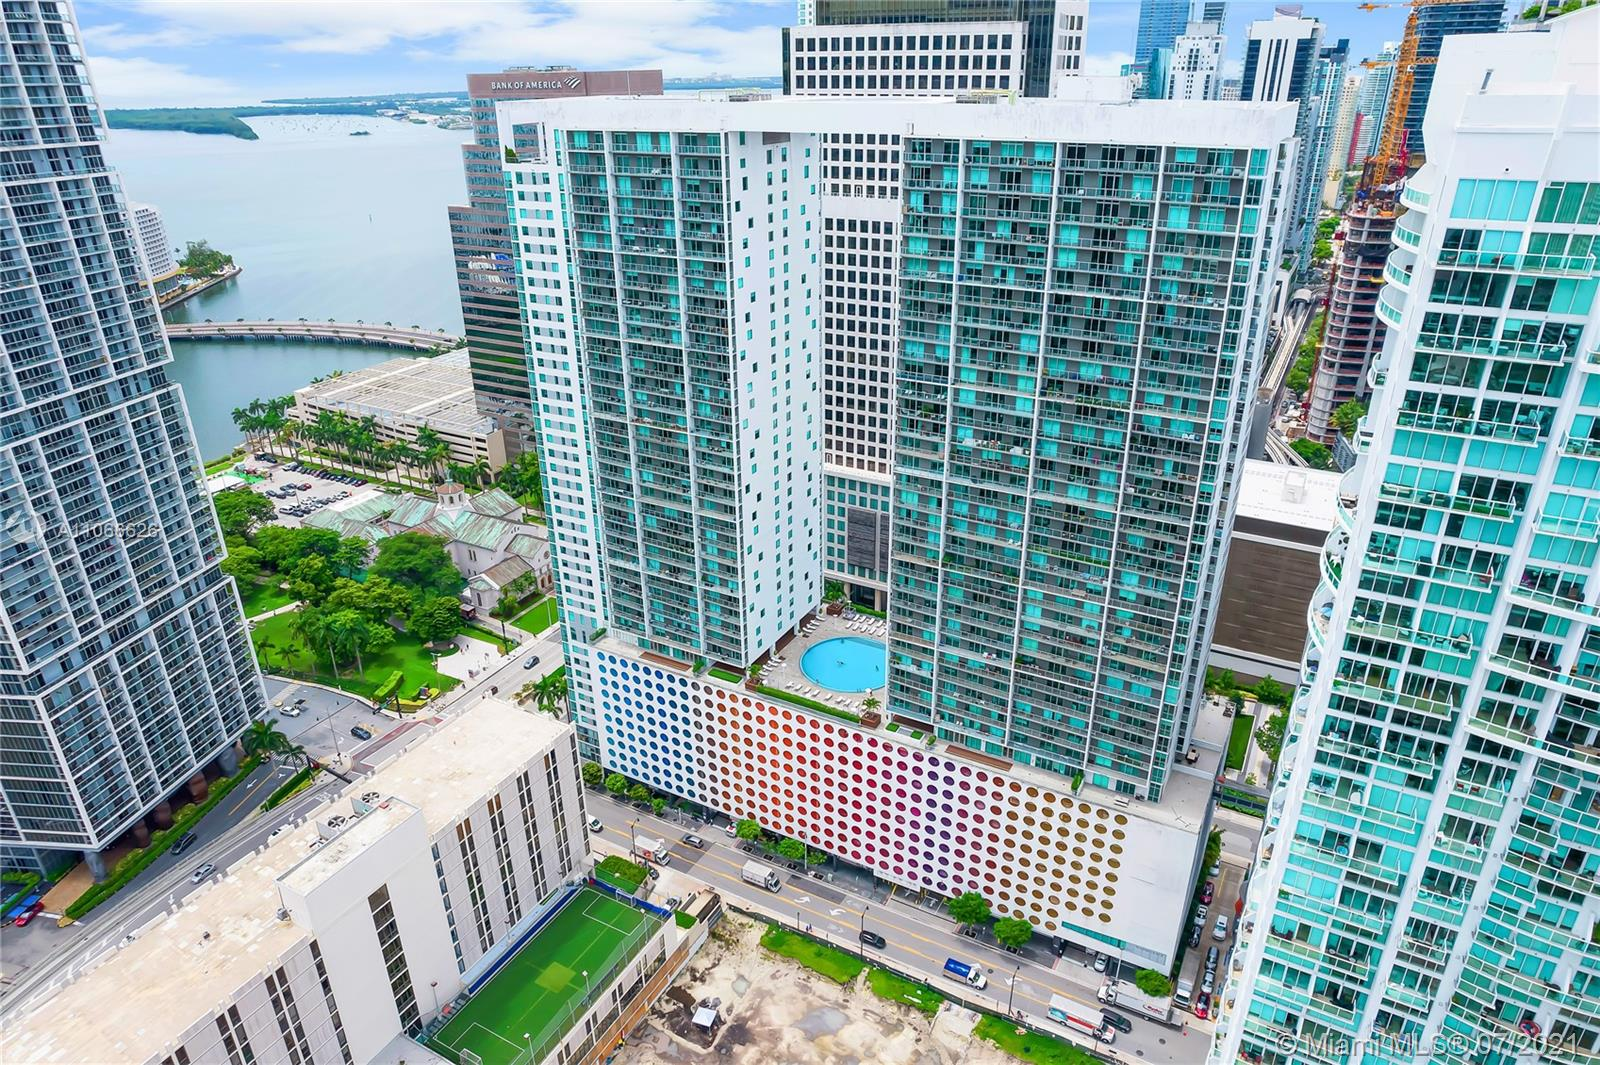 Great 2 bed/2 bath north-facing unit in the heart of Miami's desirable Brickell district. The unit has fantastic views of Biscayne Bay, Miami River, and downtown Miami, ceramic floors throughout, master bath spa, roller shades, and blackout treatment. Close proximity to all the things Brickell has to offer: restaurants, shops, grocery stores,public transportation, and Brickell City Centre. Building amenities include the main deck pool, fitness center, private theater, clubhouse with pool table and TV screens, and best of all, a spectacular rooftop pool deck featuring breathtaking views of the Miami Skyline and Biscayne Bay. 24/7 lobby security guards, CCTV and valet. 1 designated parking spot. Showings by appointment only. Equal Housing Opportunity.